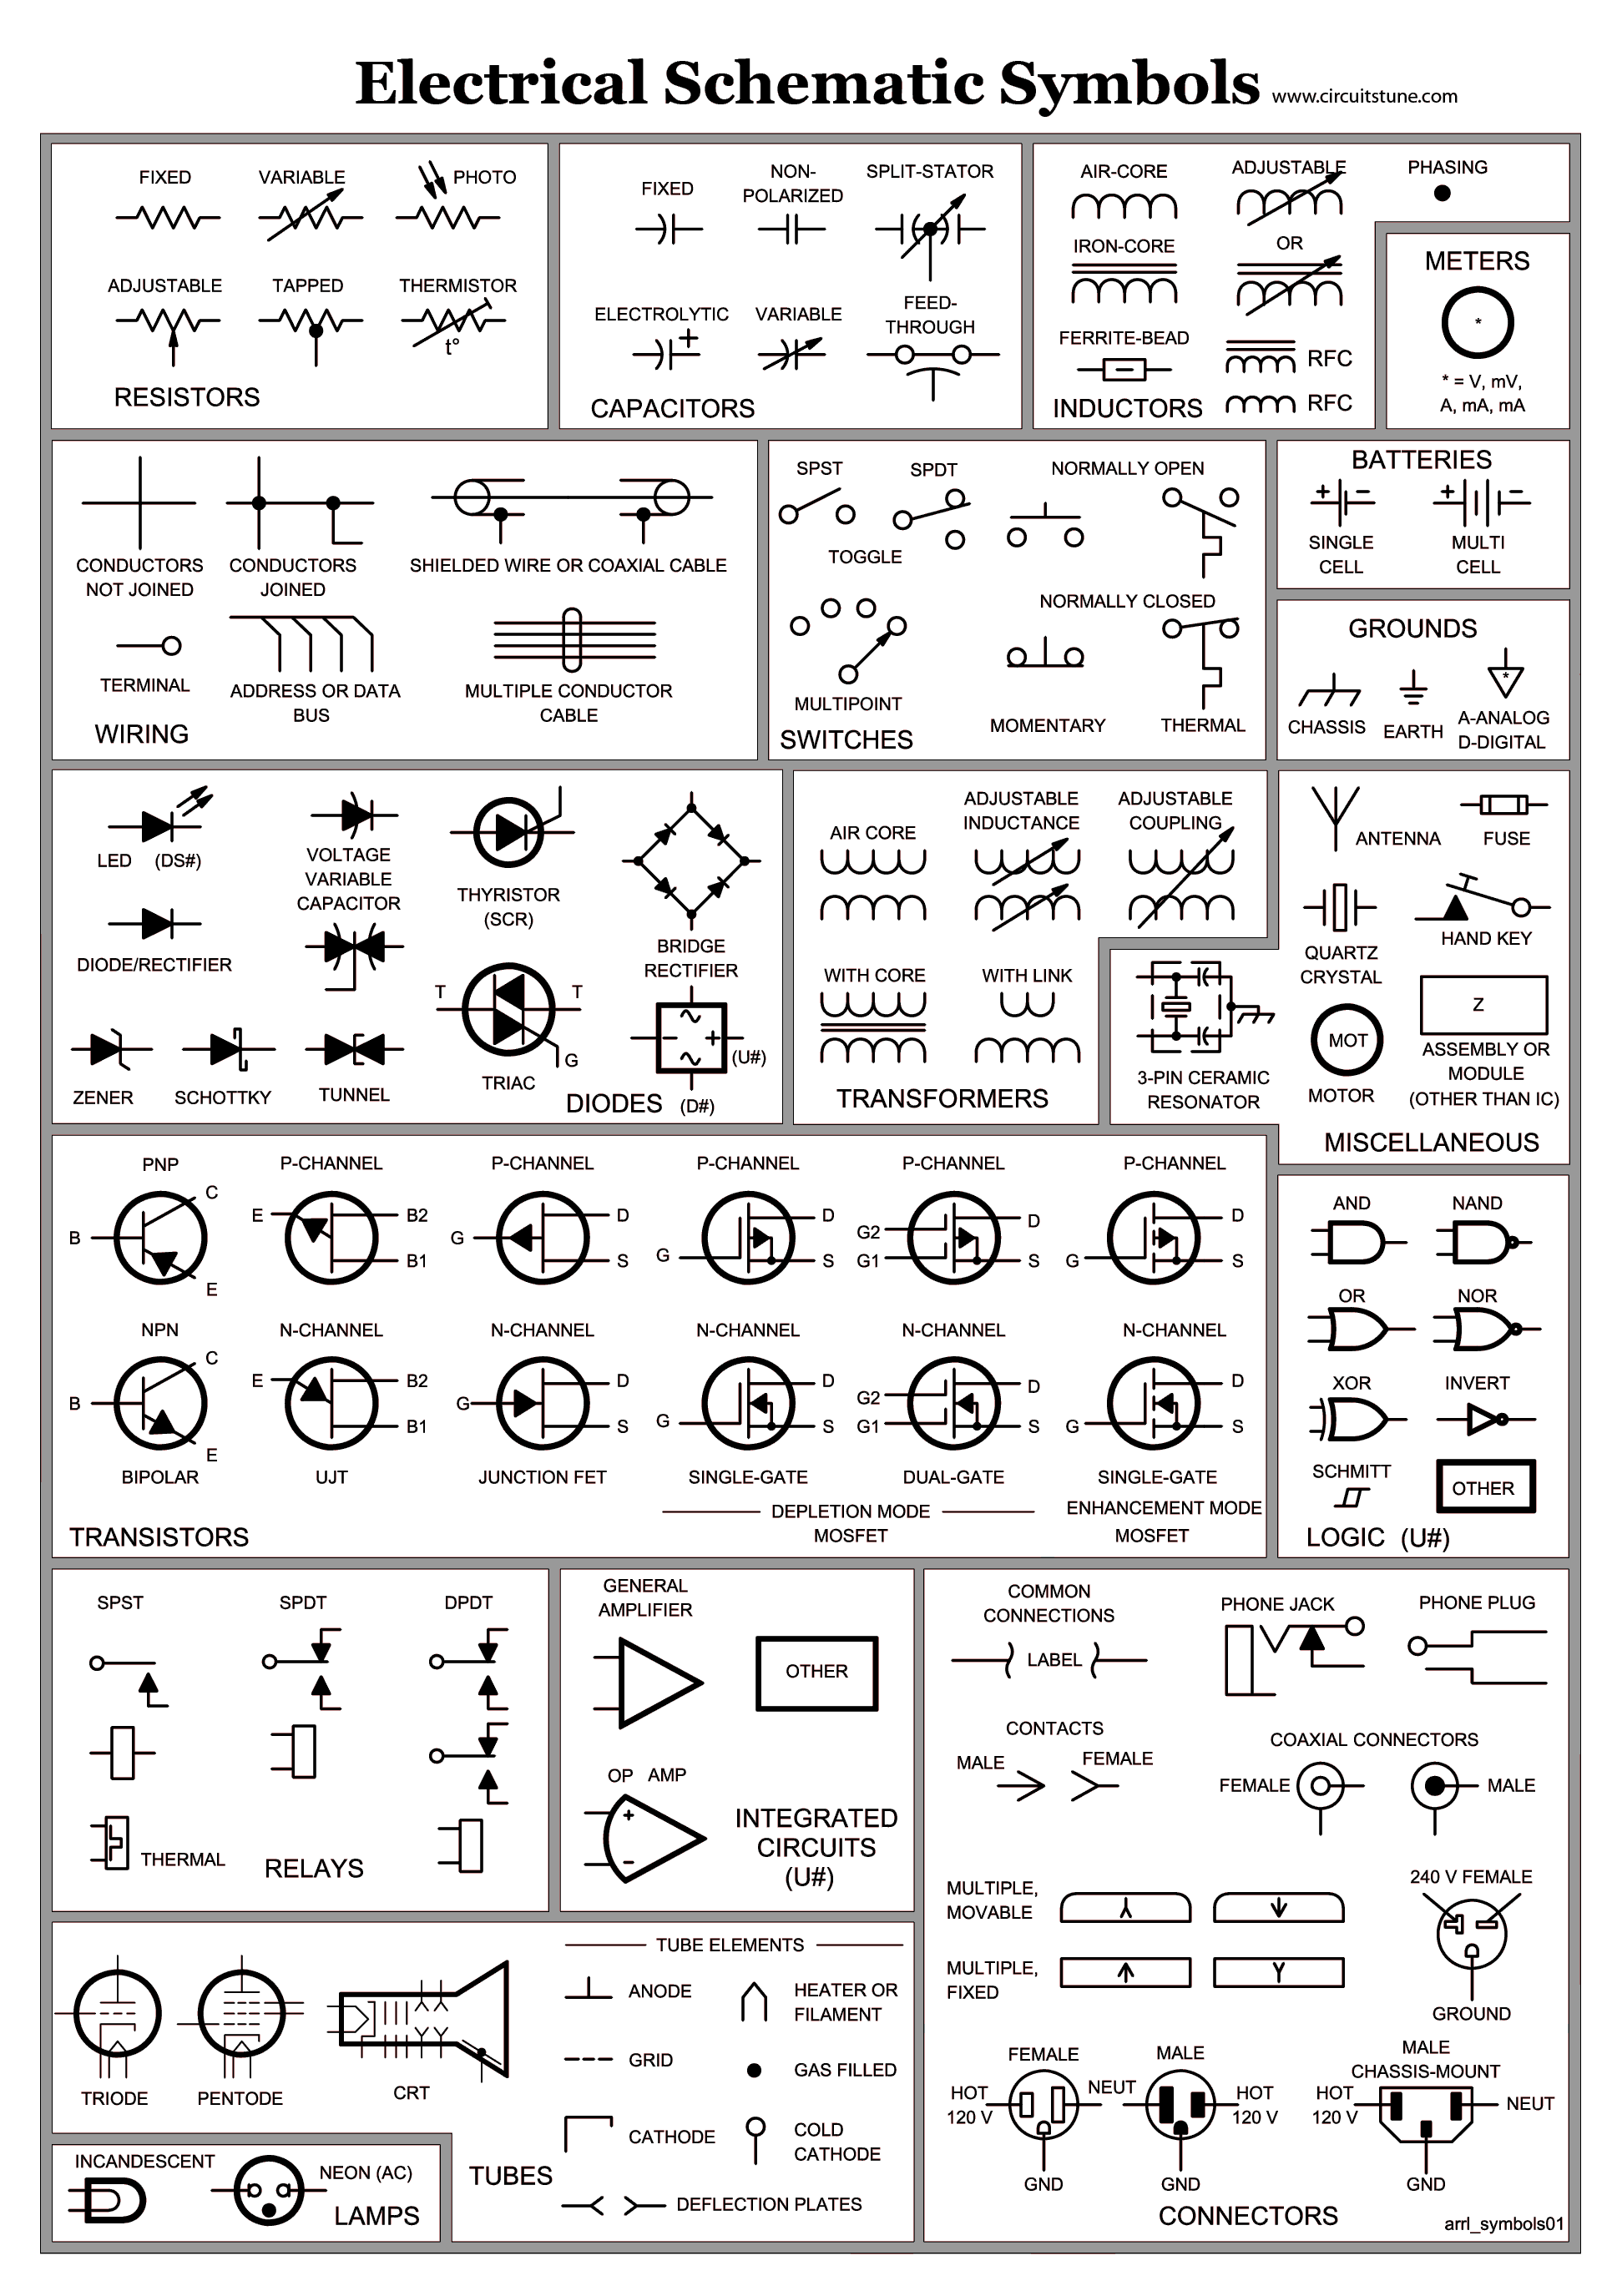 electrical schematic symbols wire diagram symbols automotive wiring rh pinterest co uk electrical schematic terminology Electrical Schematic Symbols